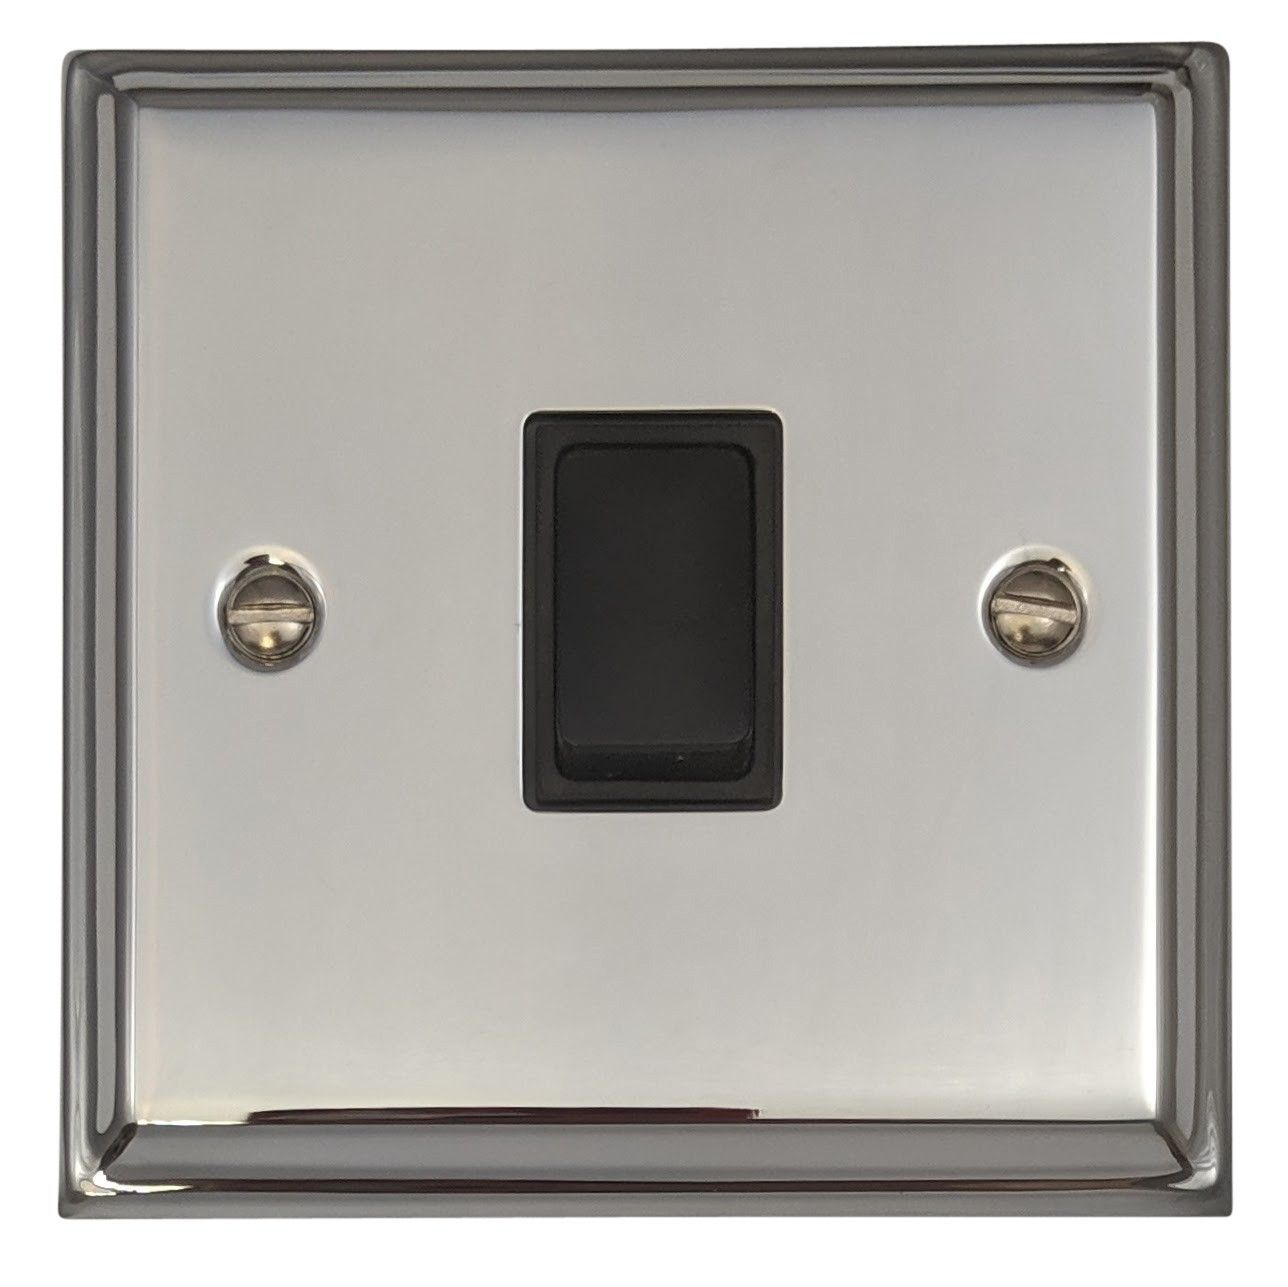 Rocker Light Switch >> G H Dc1b Deco Plate Polished Chrome 1 Gang 1 Or 2 Way Rocker Light Switch